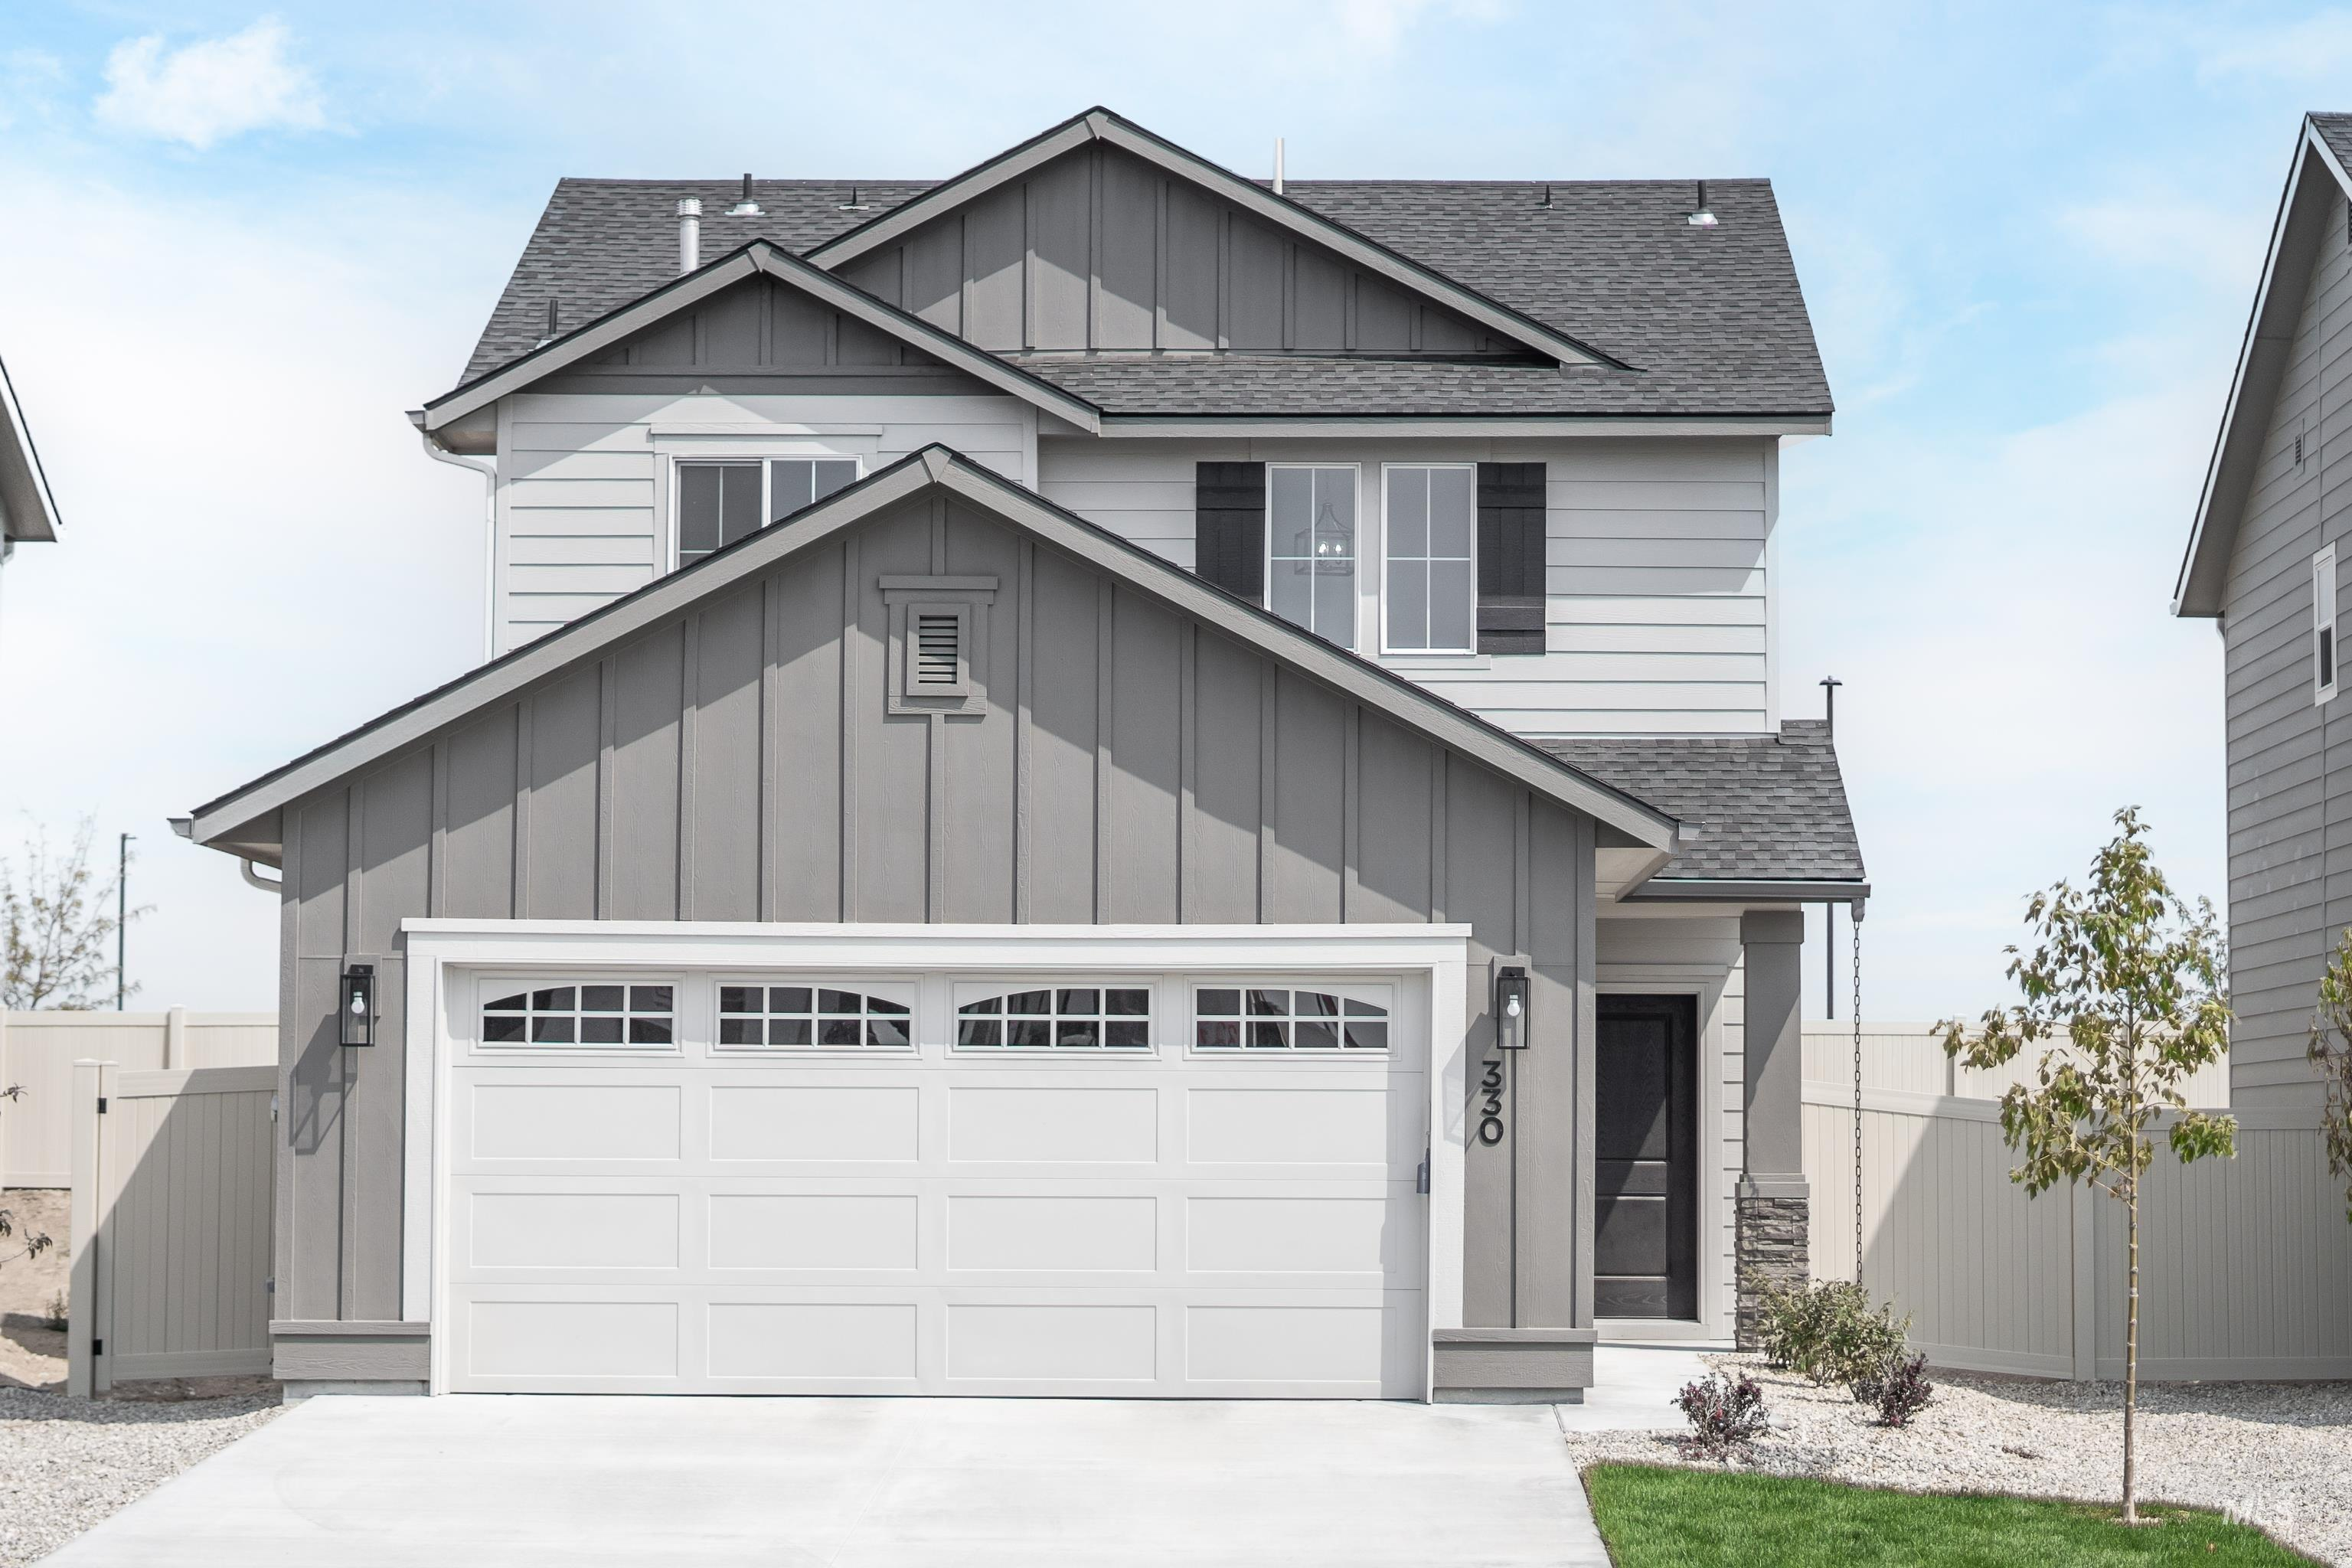 Get $25k with our Buy Now, Get More Promo NOW thru 7/31. Want to tour this home NOW? Get on-demand access with TOUR NOW. The Poe 1471 is a classic & timeless floor plan. This 2 story home will give you exactly what you need in a new home. The open concept on the main level gives you plenty of room for entertaining while having 3 bedrooms upstairs, plus the master with a large walk in closet! Upgraded cabinets, SS appliances, quartz countertops, evp flooring, & partial fencing. Photos are similar. RCE-923